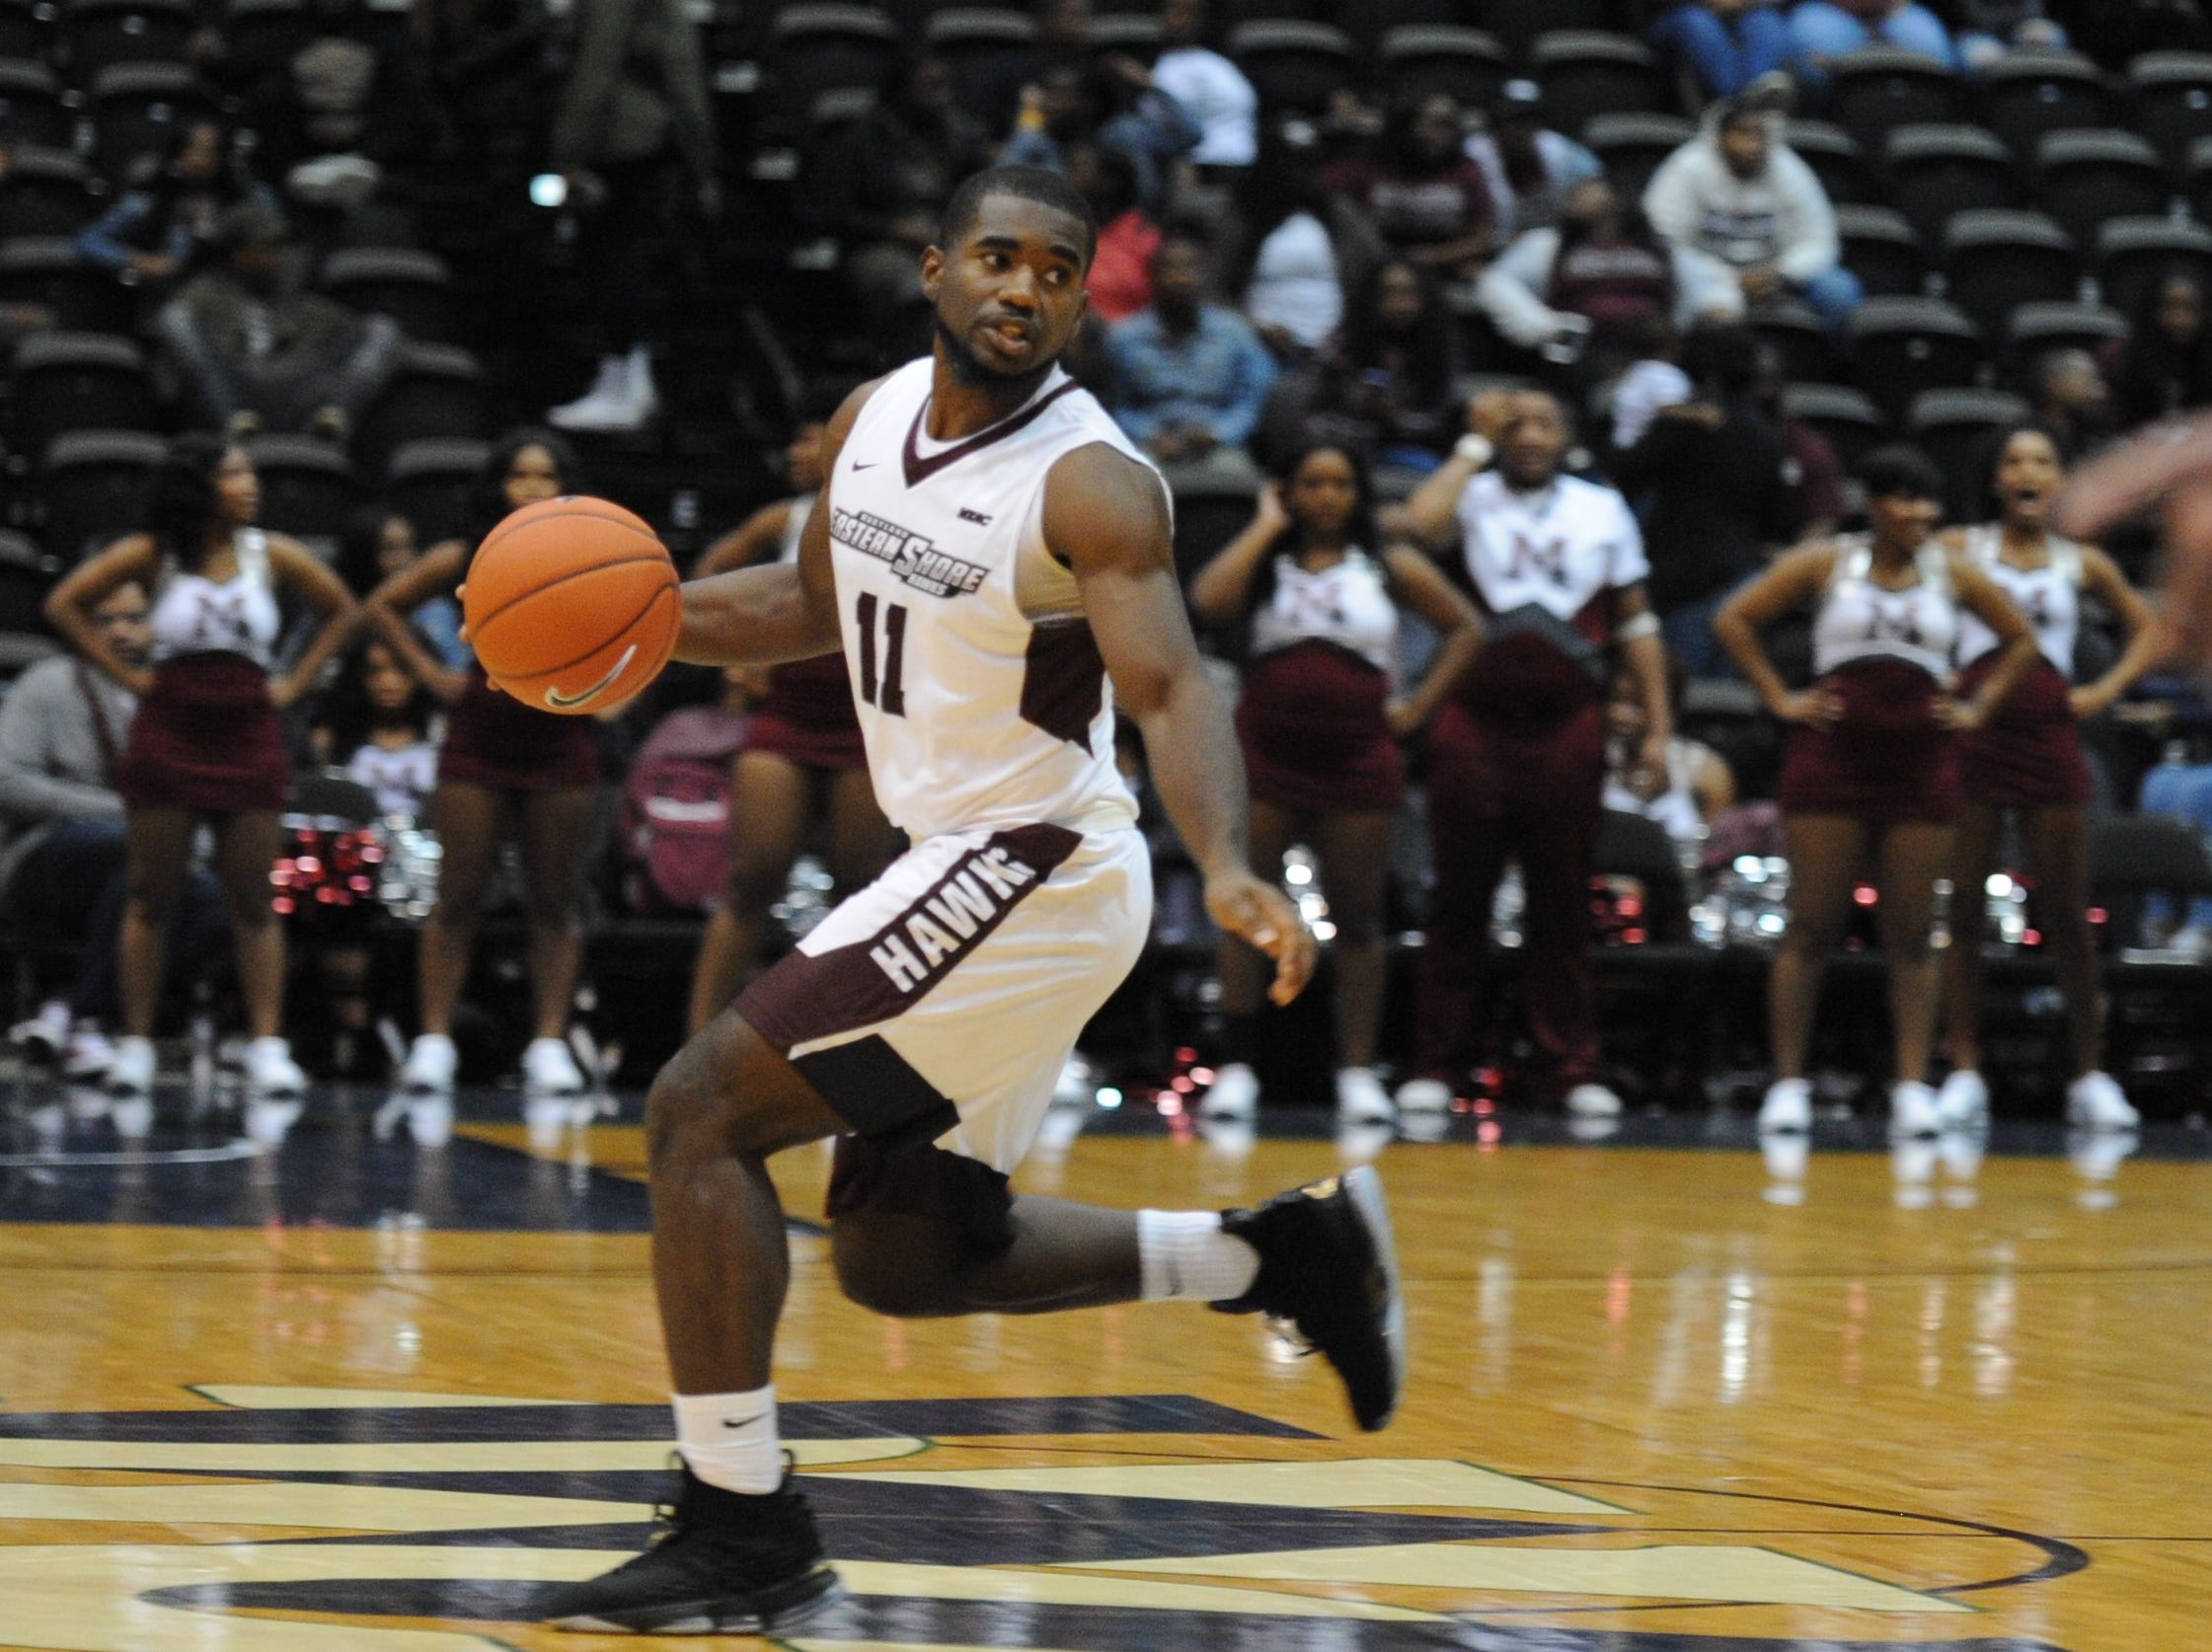 University of Maryland Eastern Shore guard Ahmad Frost takes the ball past half court against Salisbury University during the 10-Mile Tipoff on Thursday, Nov. 1, 2018. The Sea Gulls won, 67-60.